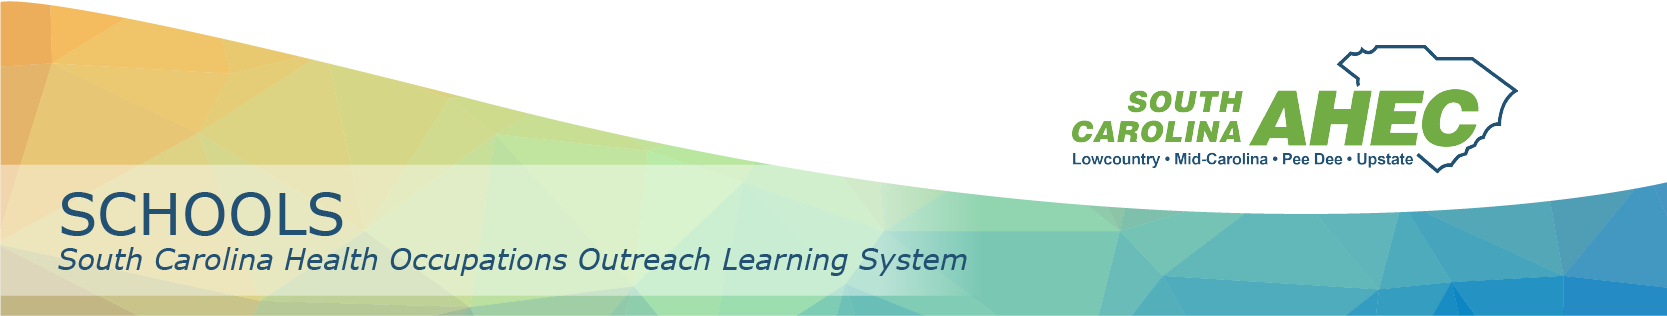 SCHOOLS: South Carolina Health Occupations Outreach Learning System